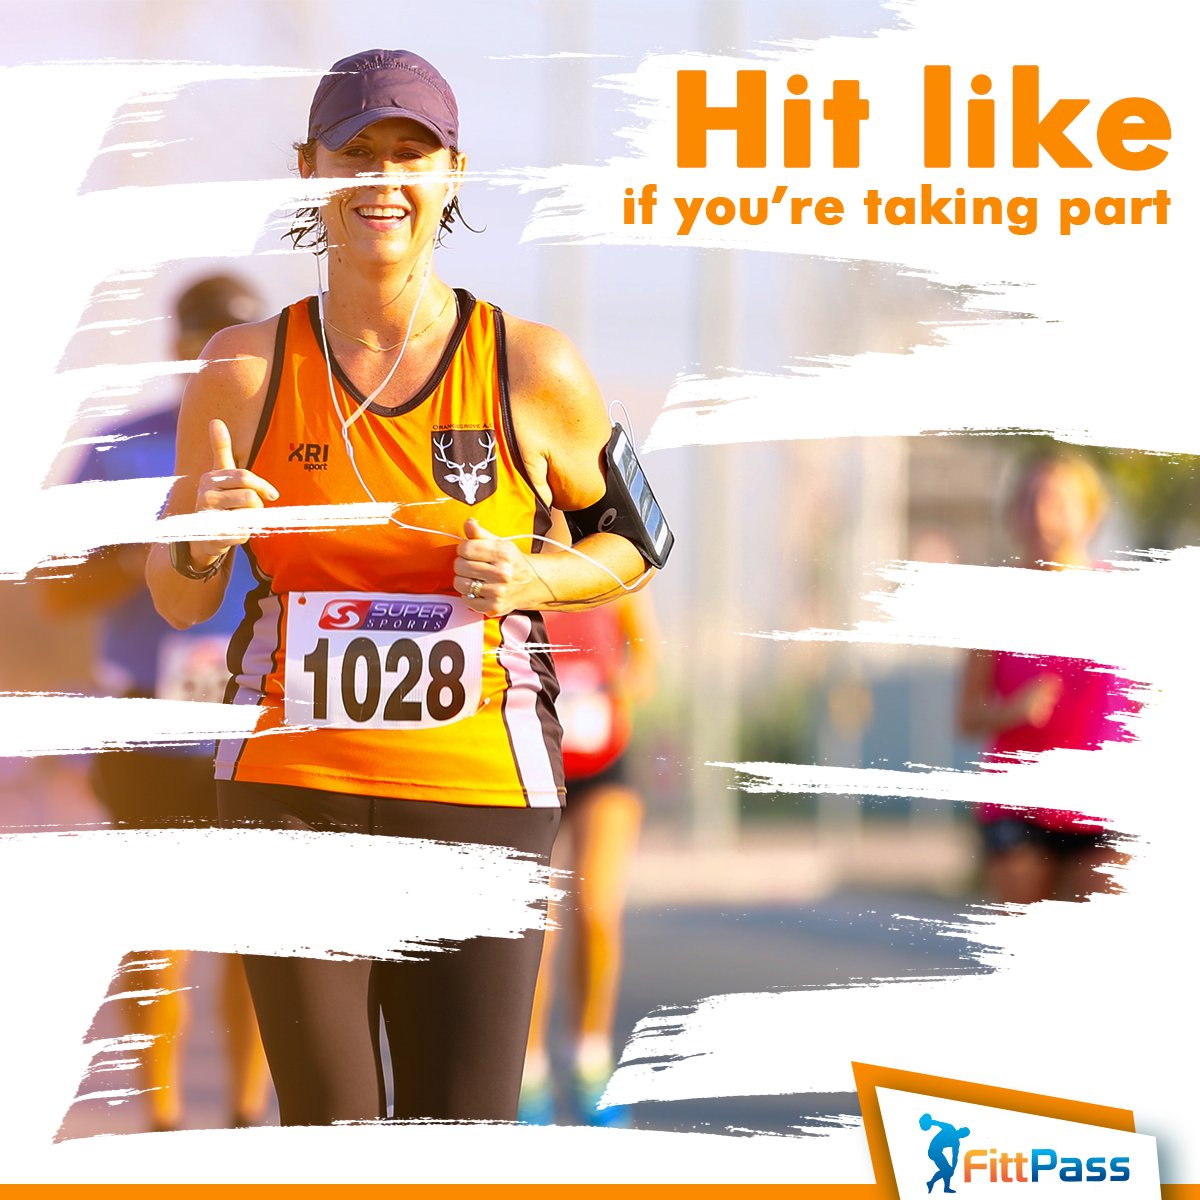 Are you taking part in the Ras Al Khaimah Half Marathon on the 21st of February?   Let us know!  #RAKHalfMarathon #RAKMarathon2020 #FittPass